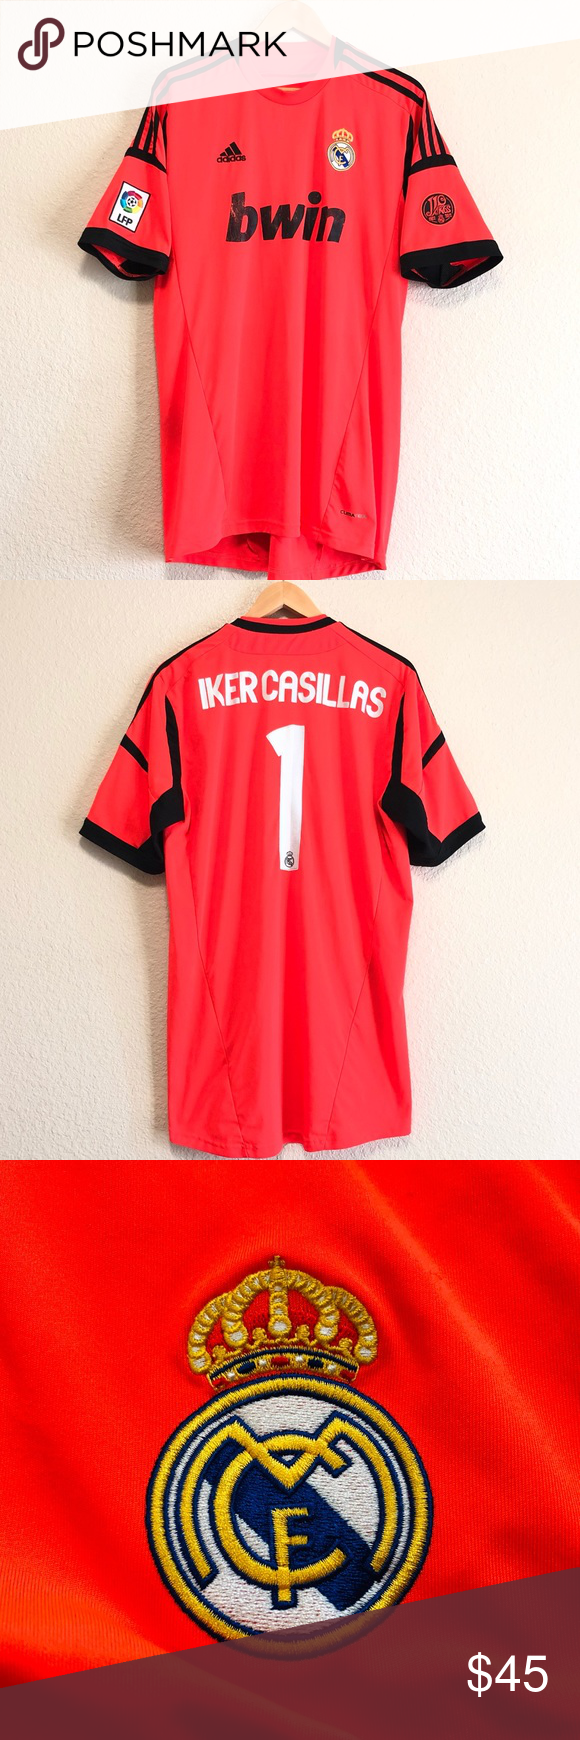 Official Iker Casillas Real Madrid Adidas Jersey Adidas Shirt Real Madrid Clothes Design